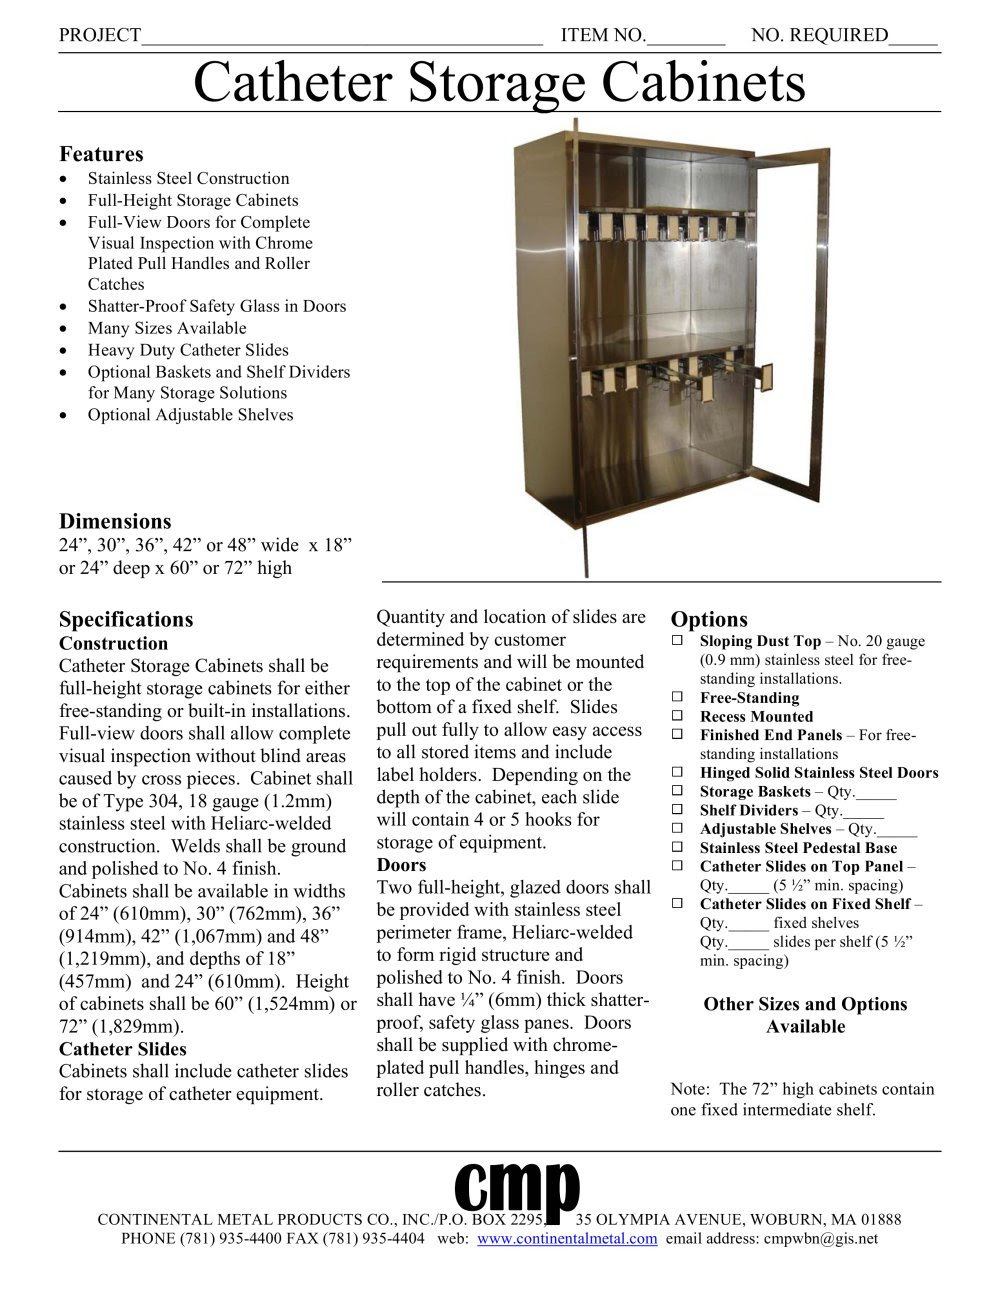 Catheter Storage Cabinets Continental Metal Products Pdf